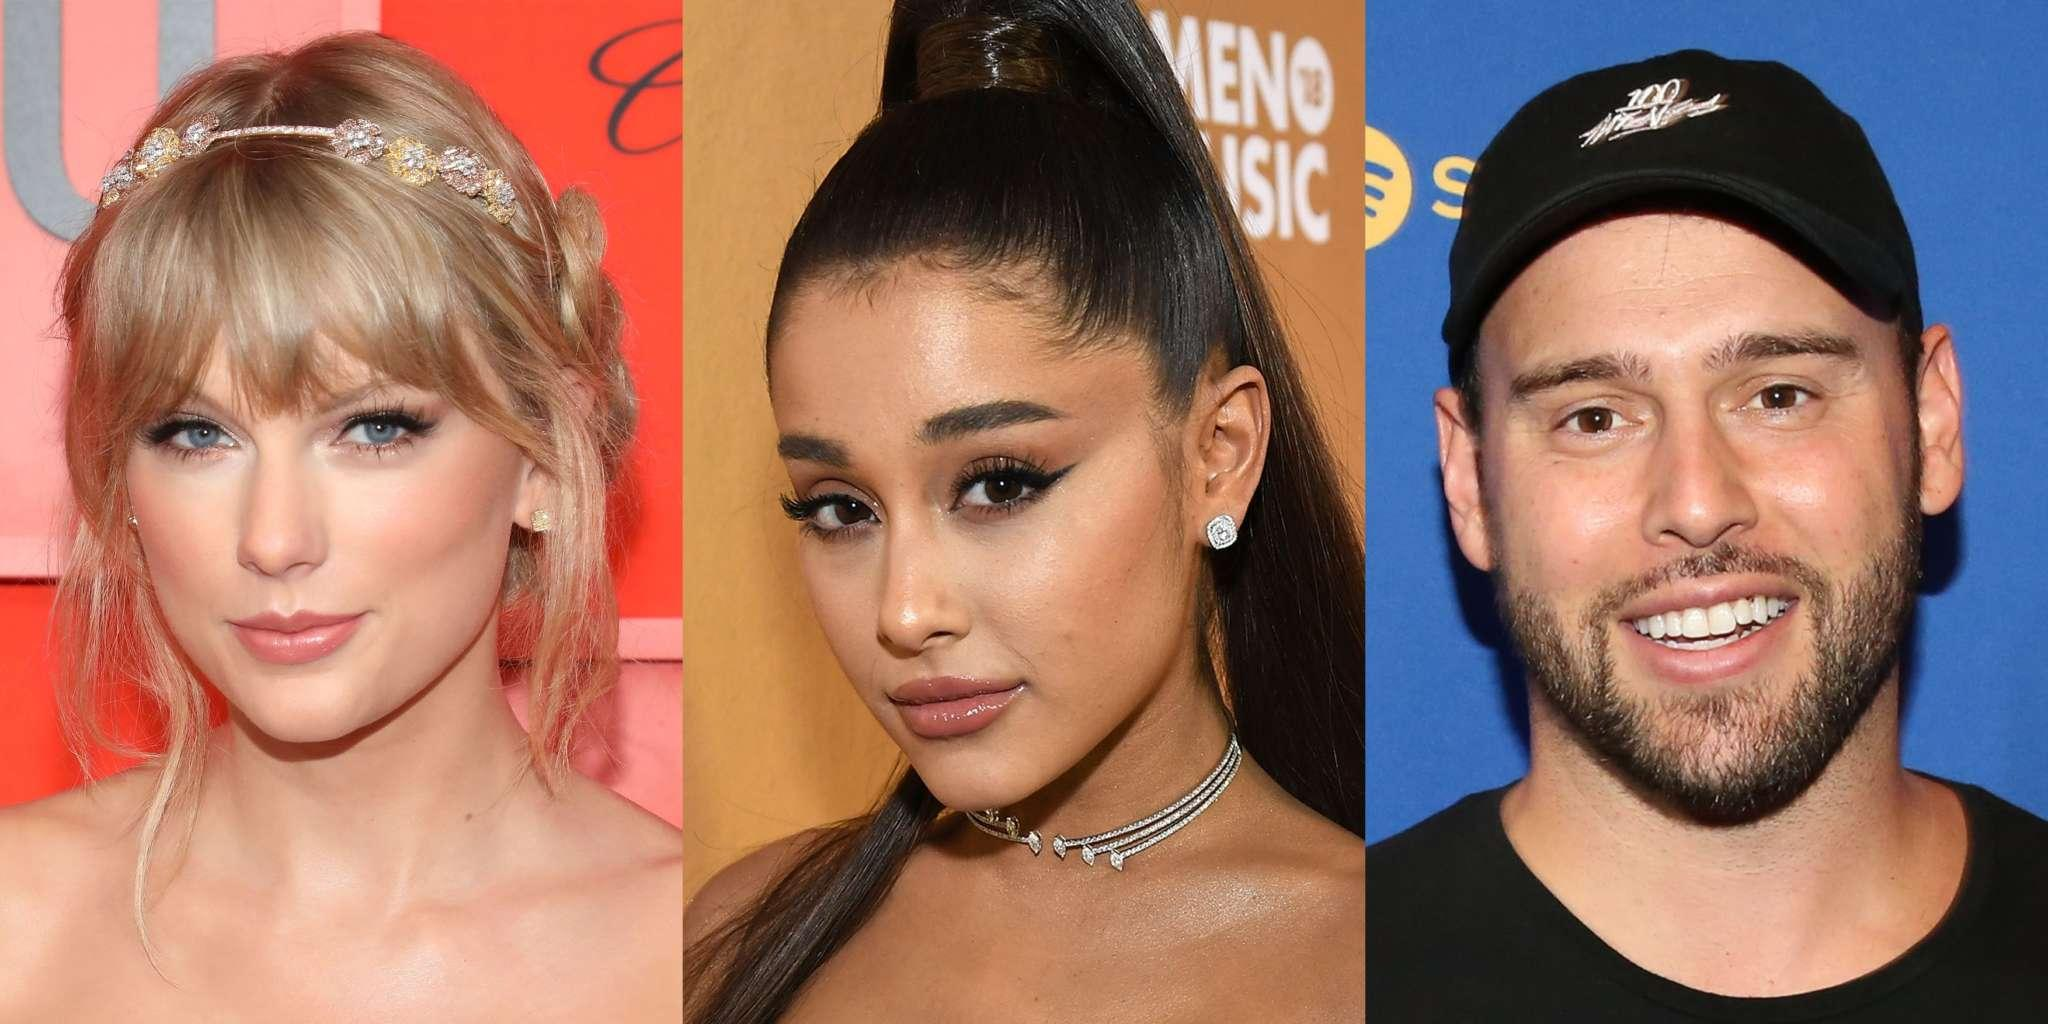 Ariana Grande Shows Taylor Swift Love And Support Amid Her Scooter Braun Drama